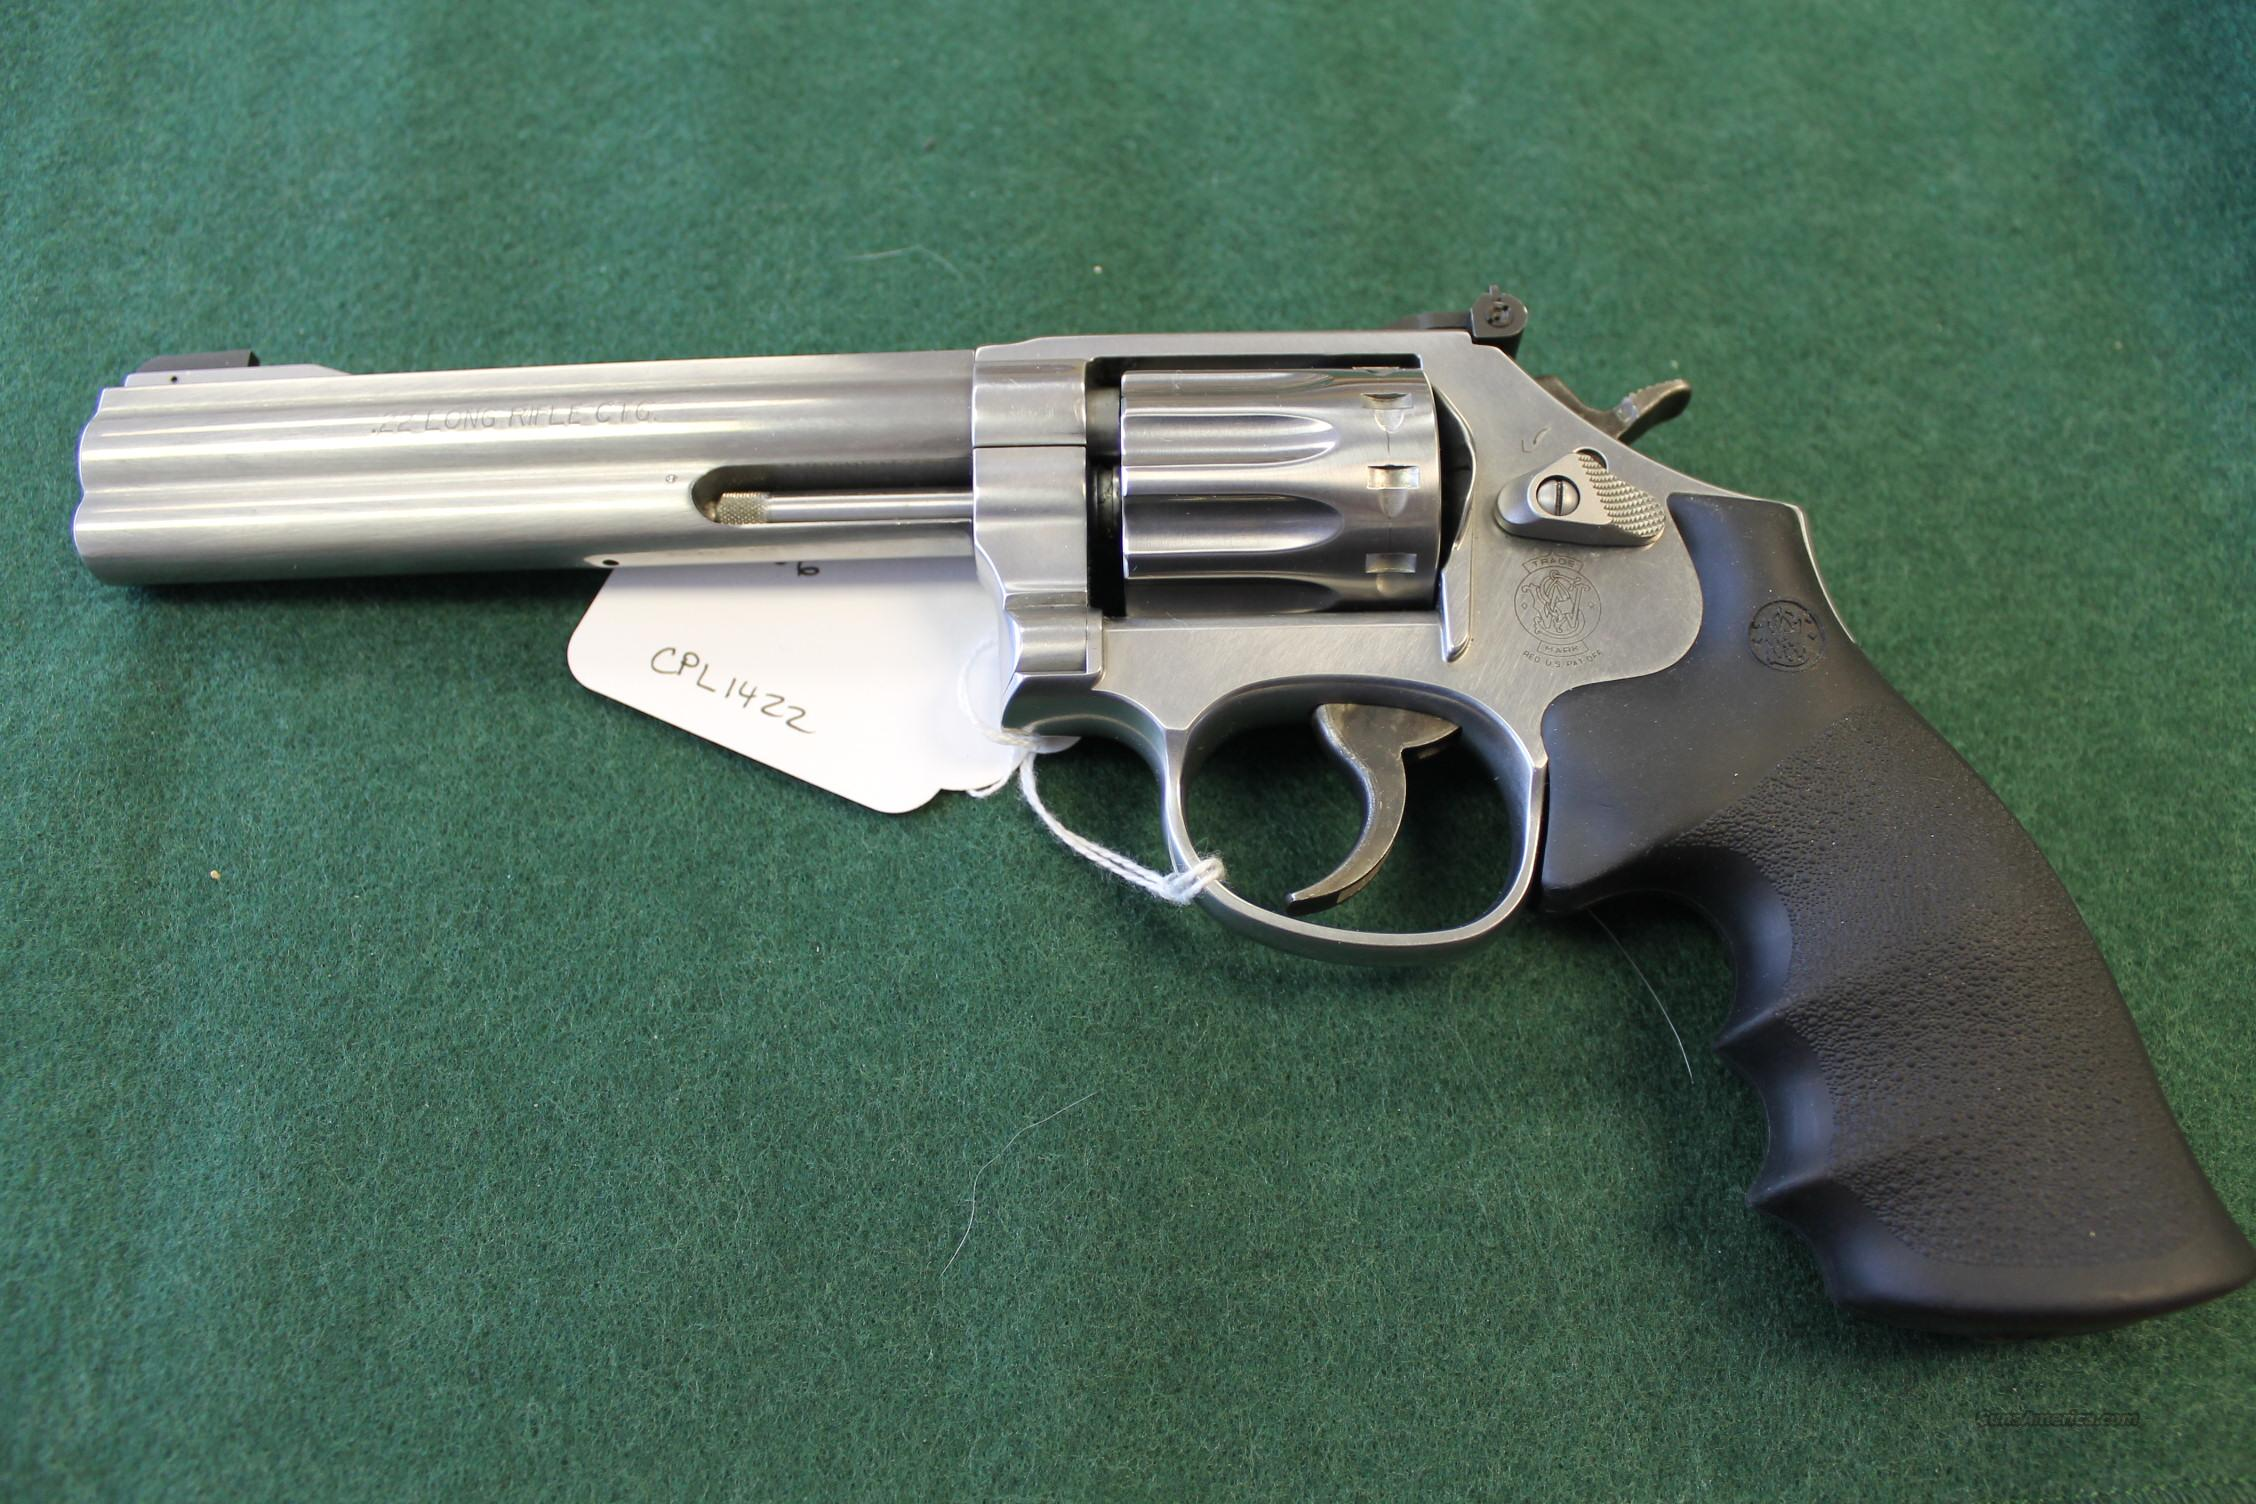 SMITH & WESSON 617 10shot 22cal REVOLVER  Guns > Pistols > Smith & Wesson Revolvers > Full Frame Revolver